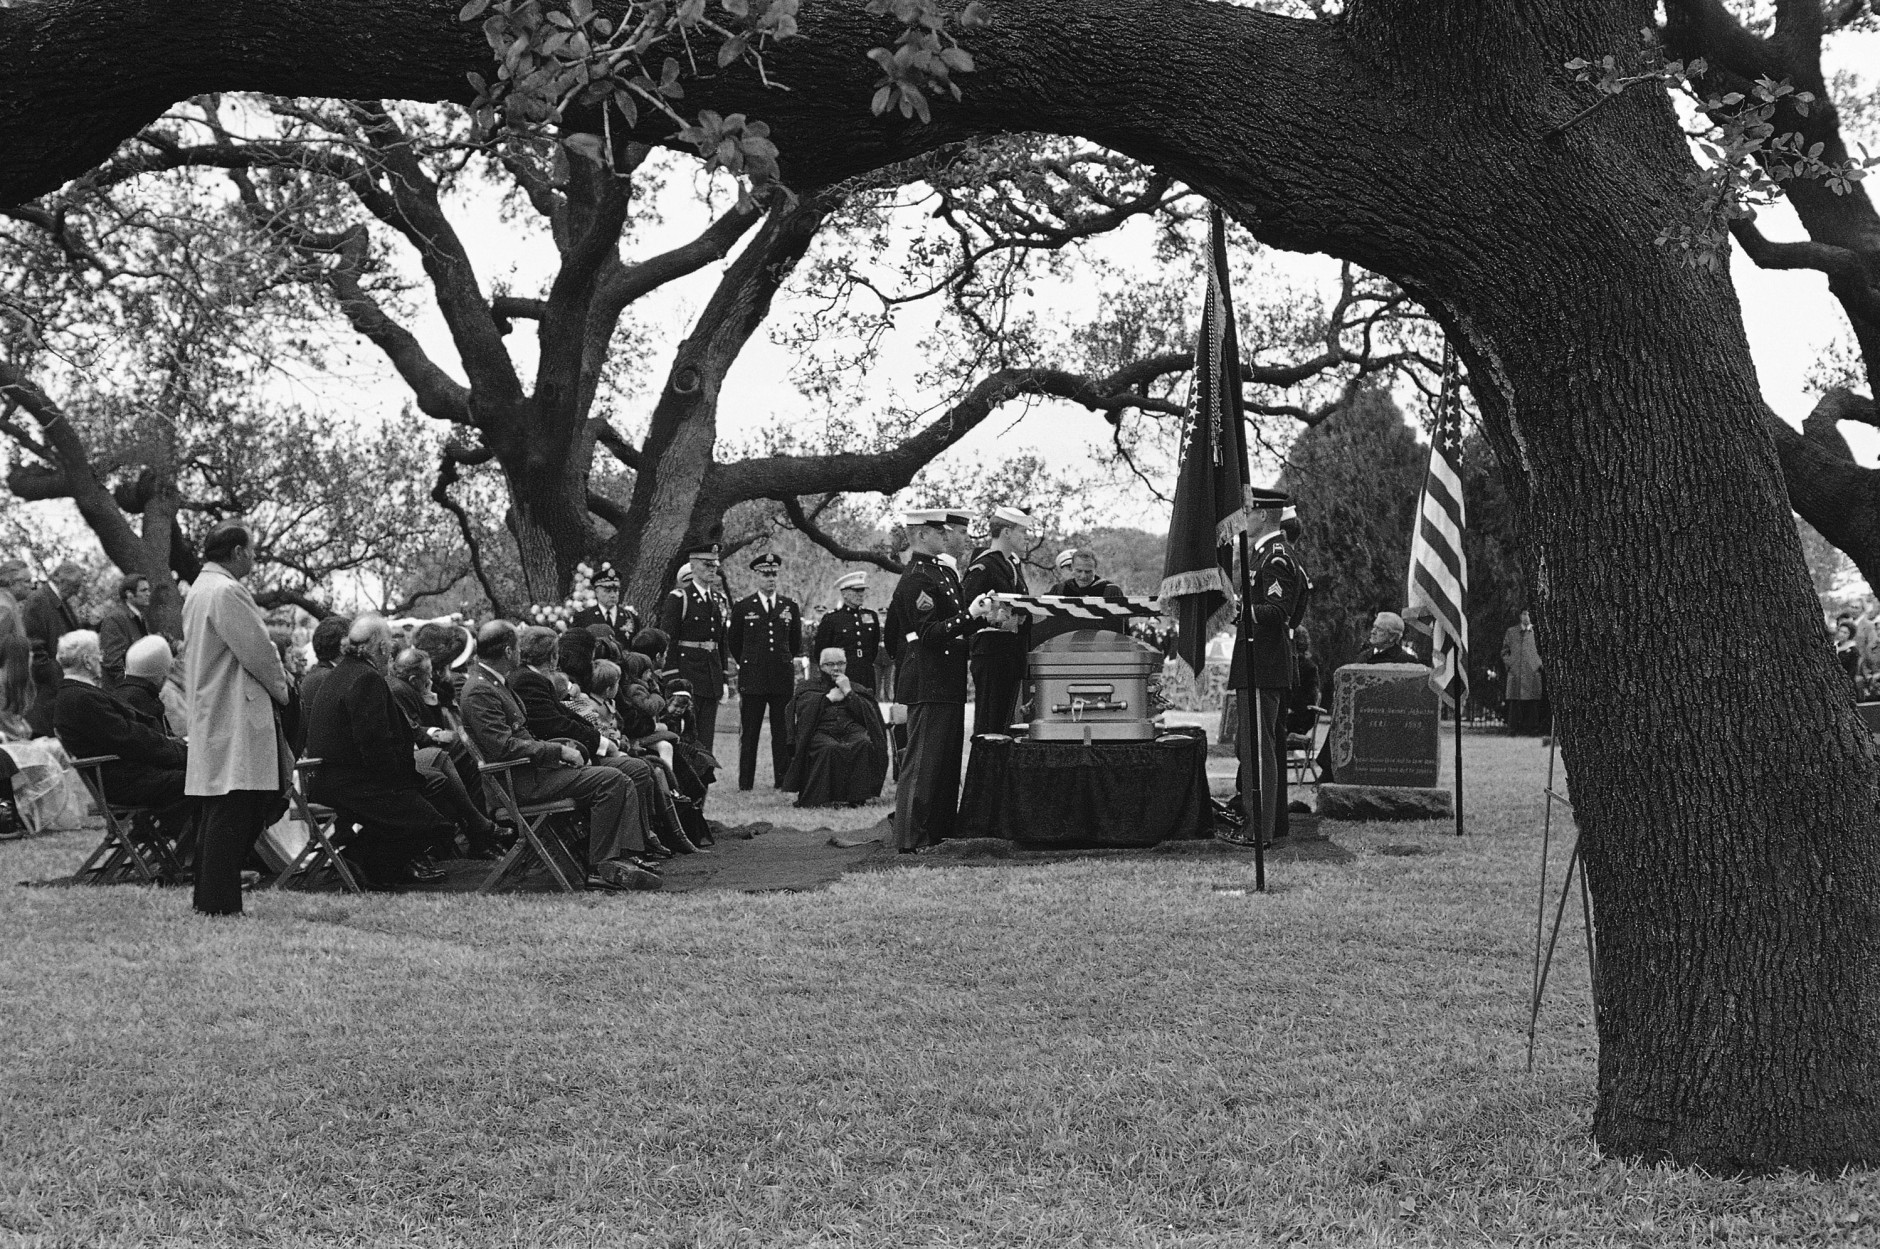 Rev. Billy Graham delivers the eulogy at the funeral of former President Lyndon B. Johnson at the family cemetery on the LBJ ranch in Stonewall, Texas on Jan. 25, 1973. The family is seated at the left with Mrs. Lady Bird Johnson sitting in the center of the group. (AP Photo)